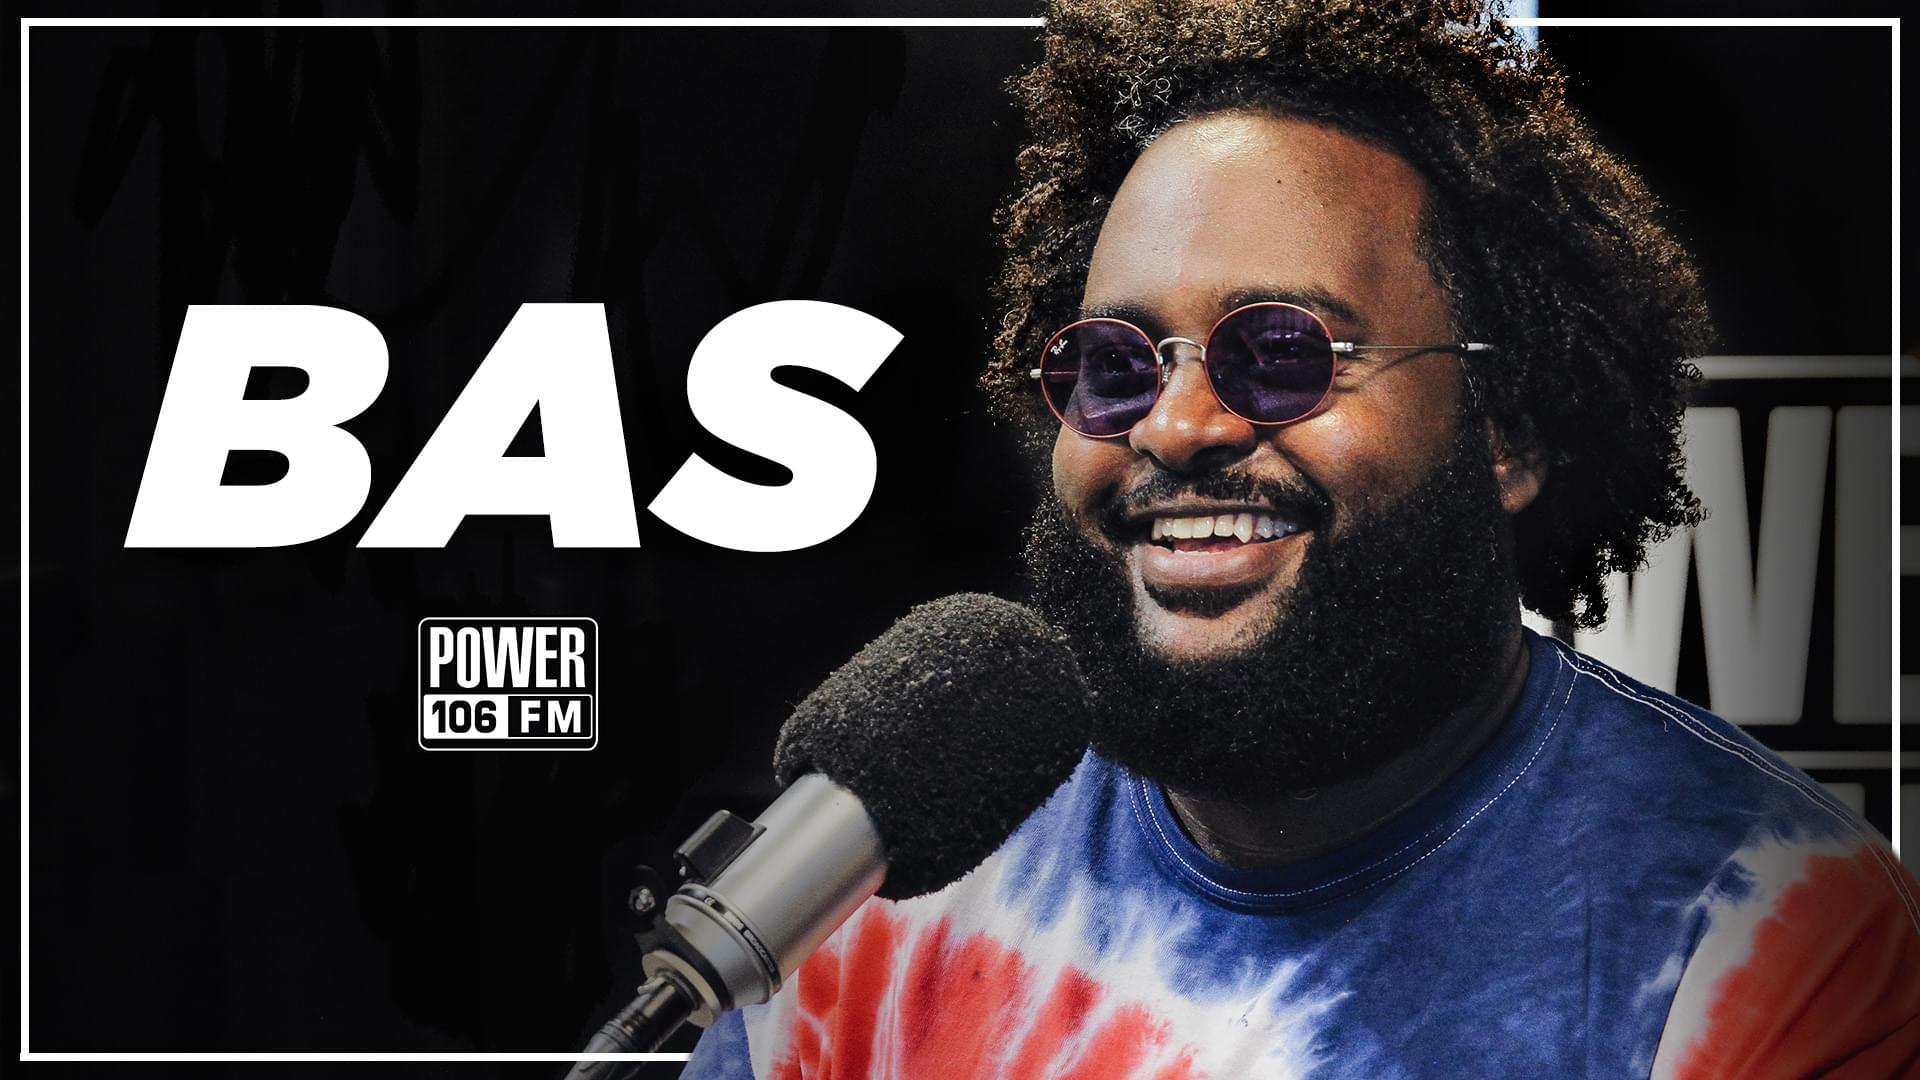 Bas Explains The Sound of 'Milky Way', Representing For Sudan, & Top 3 Albums of 2018 [WATCH]